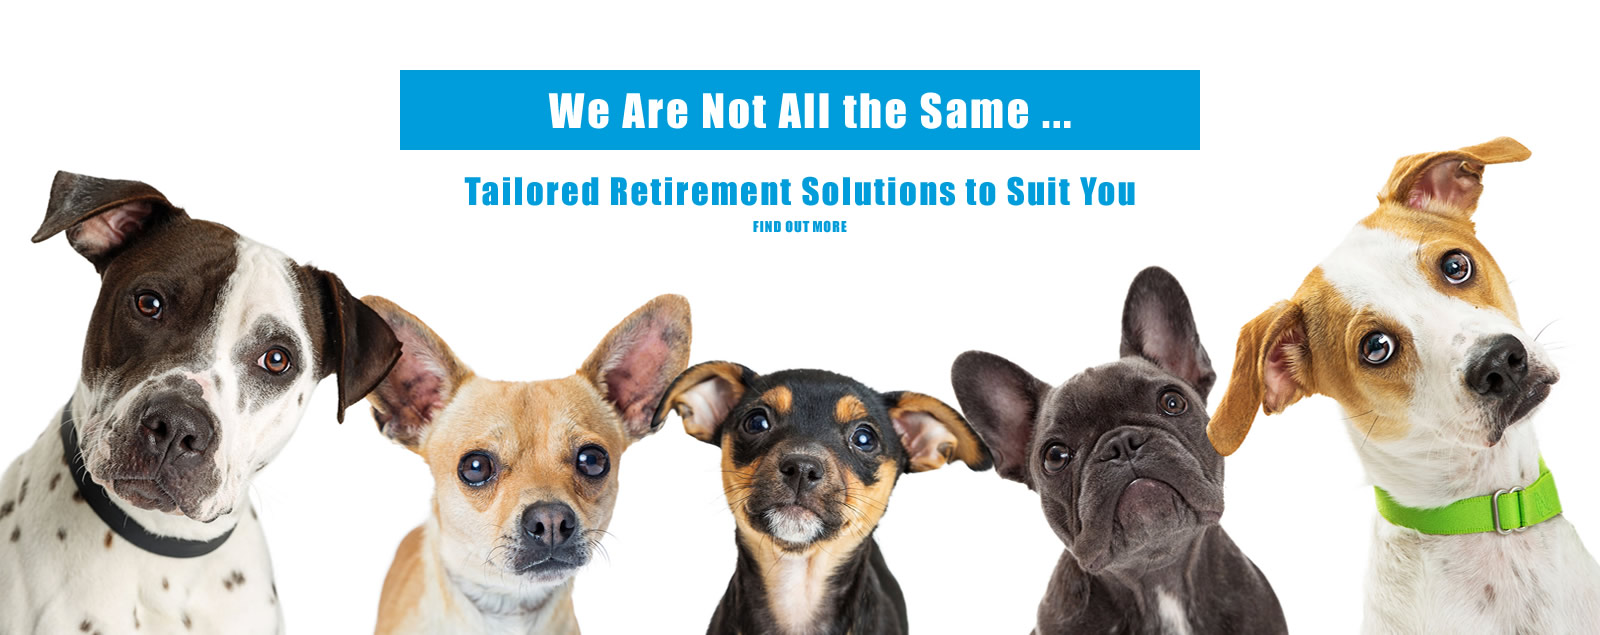 Tailored Retirement Solutions by Face 2 Face Advice